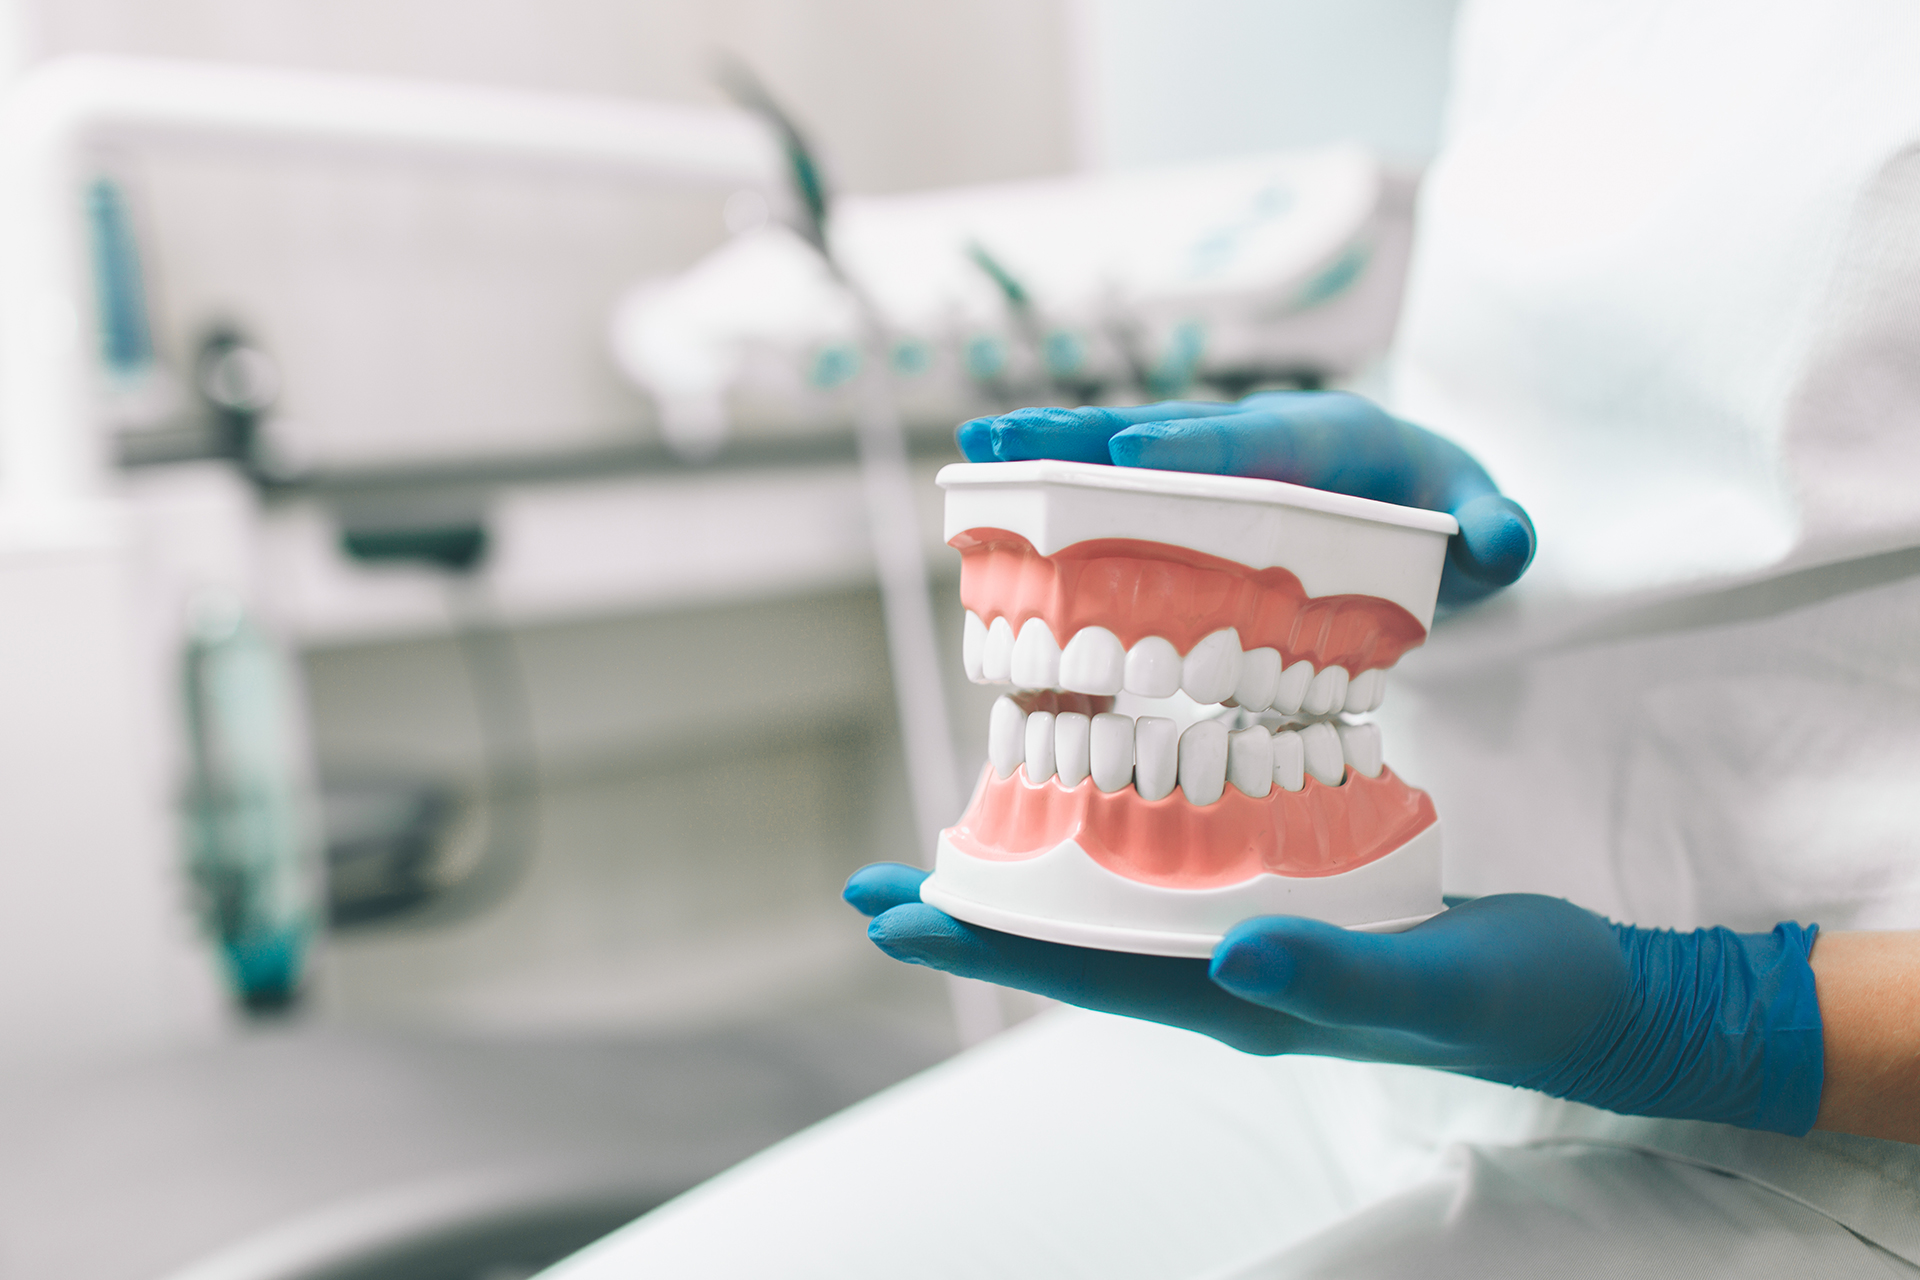 https://www.mybrownstonedental.com/wp-content/uploads/2020/10/portfolio_06.jpg